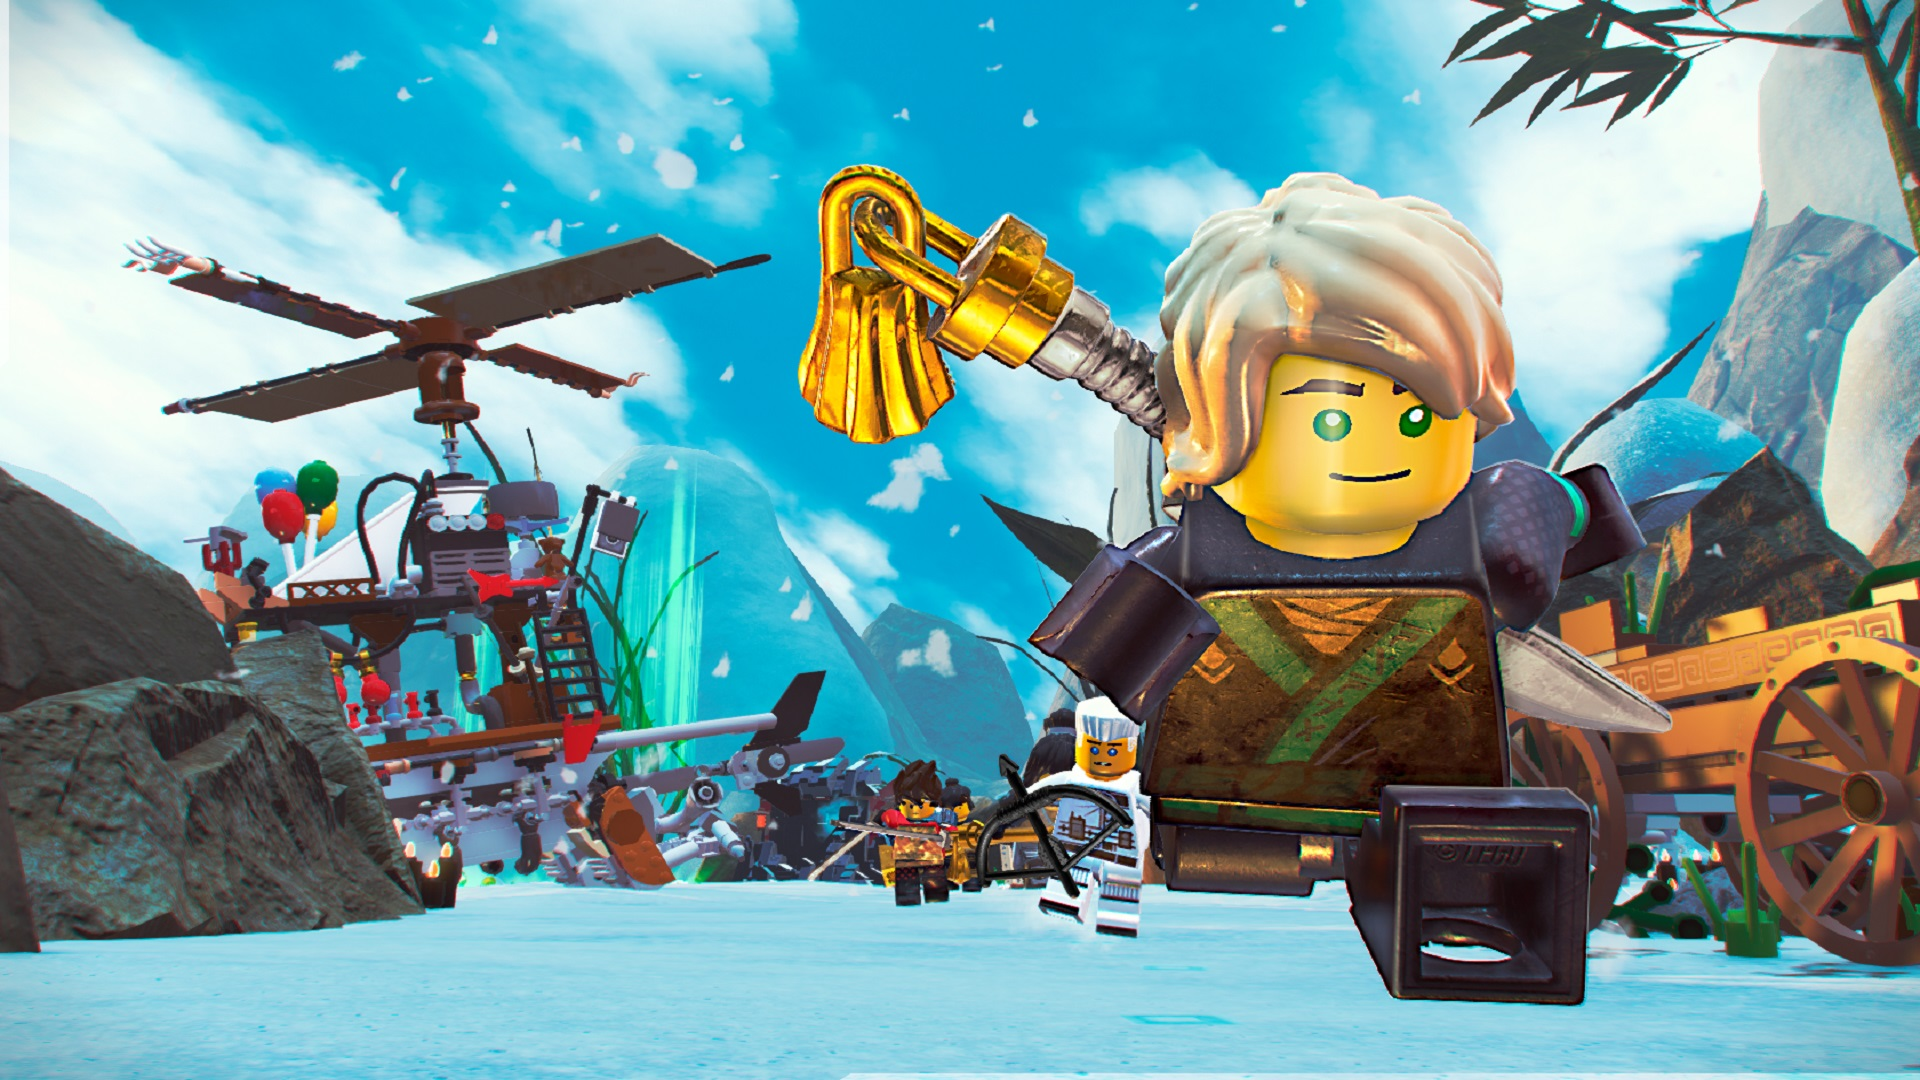 Free Games The Lego Ninjago Movie Game Is Free Right Now On Steam Pcgamesn